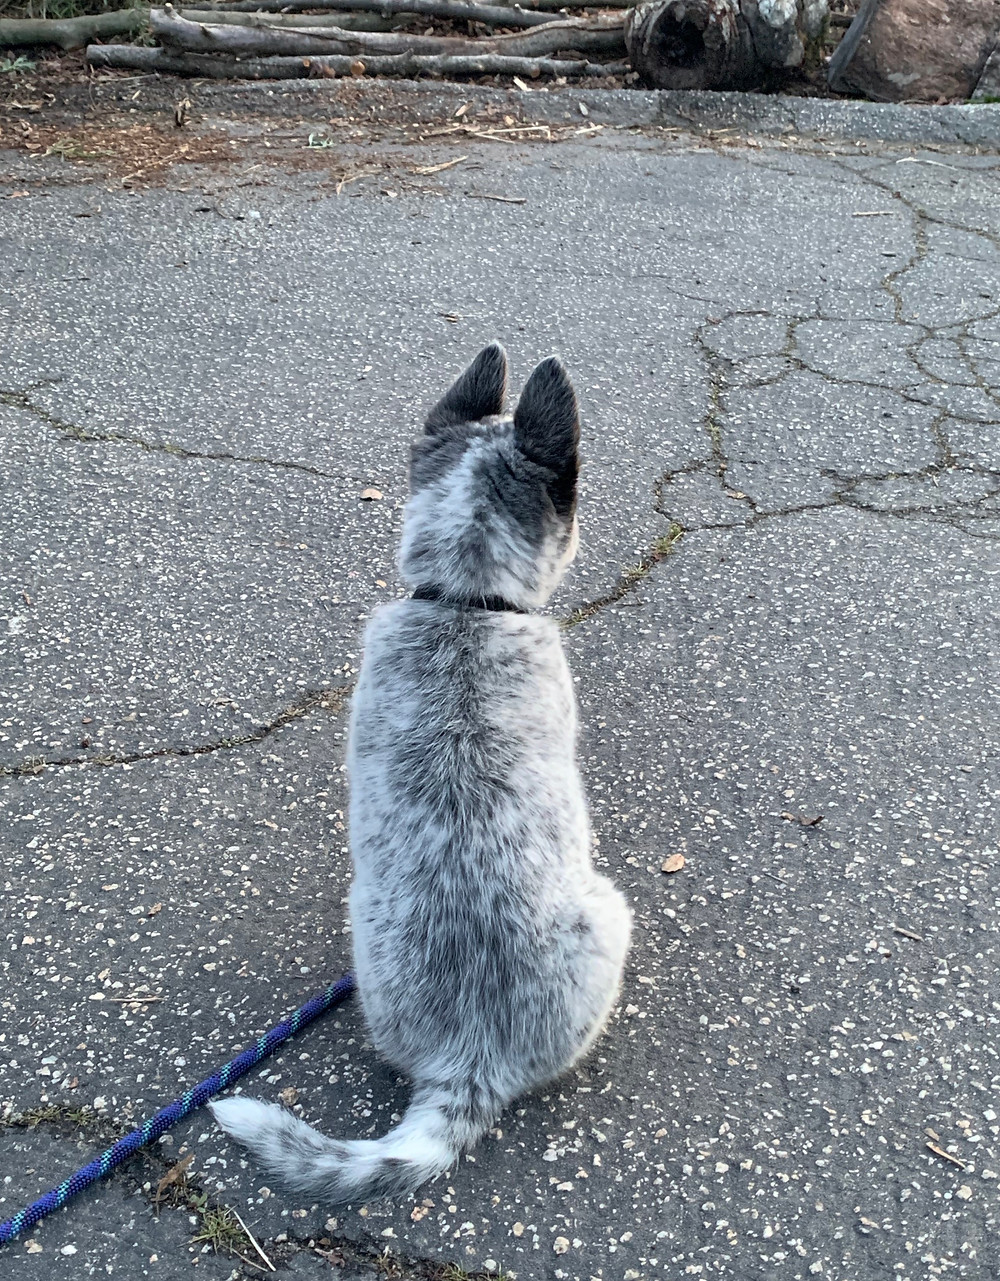 Australian cattle dog from behind with large ears and long tail